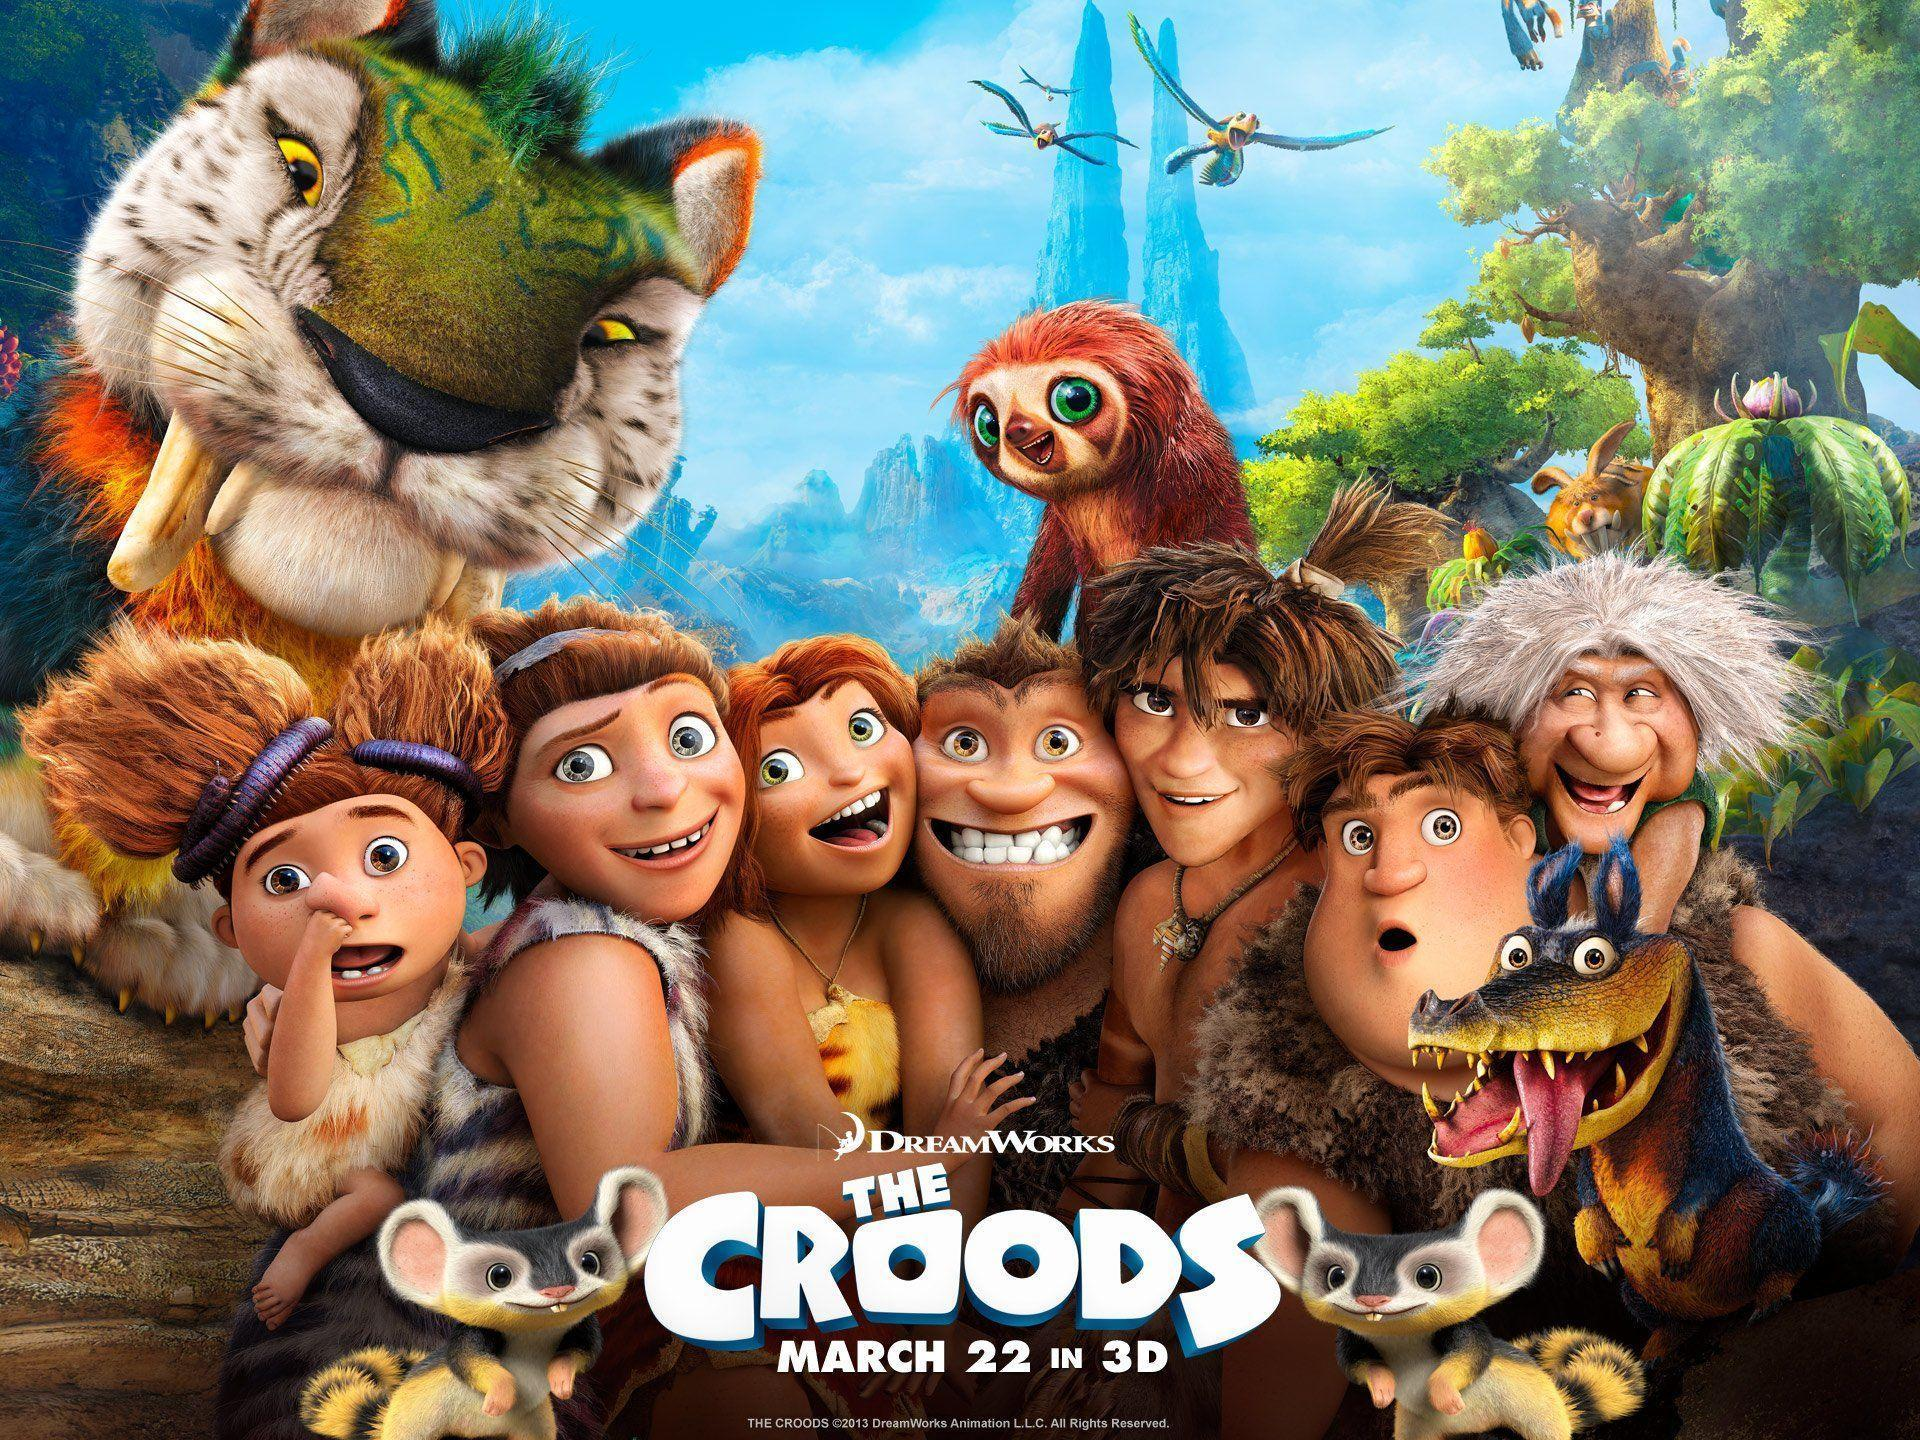 The croods wallpapers wallpaper cave 29 the croods hd wallpapers backgrounds wallpaper abyss voltagebd Images